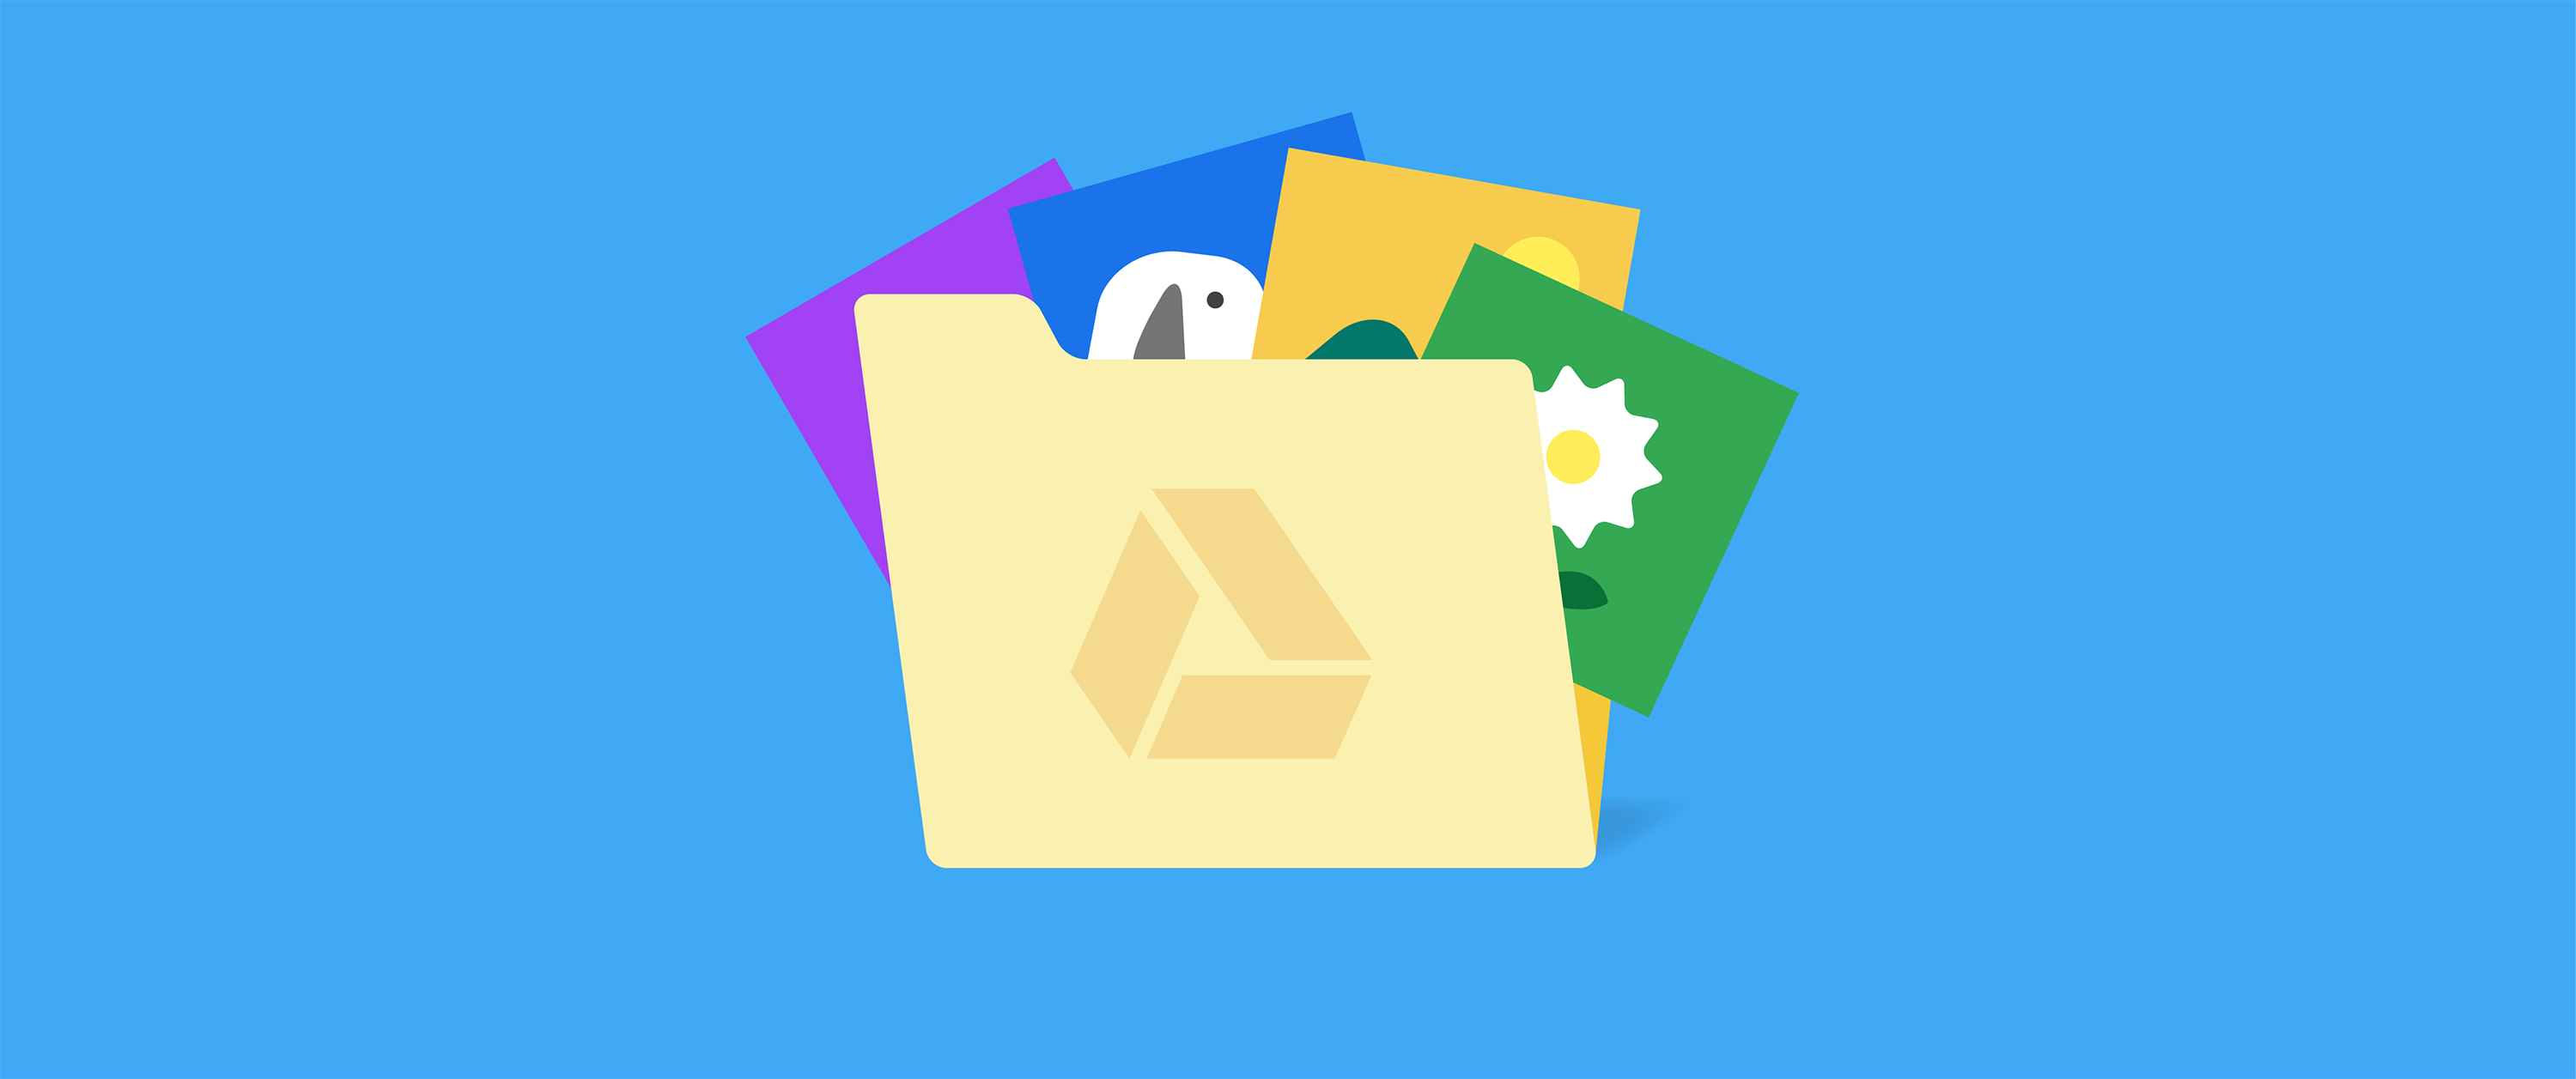 Changing how Google Drive and Google Photos work together